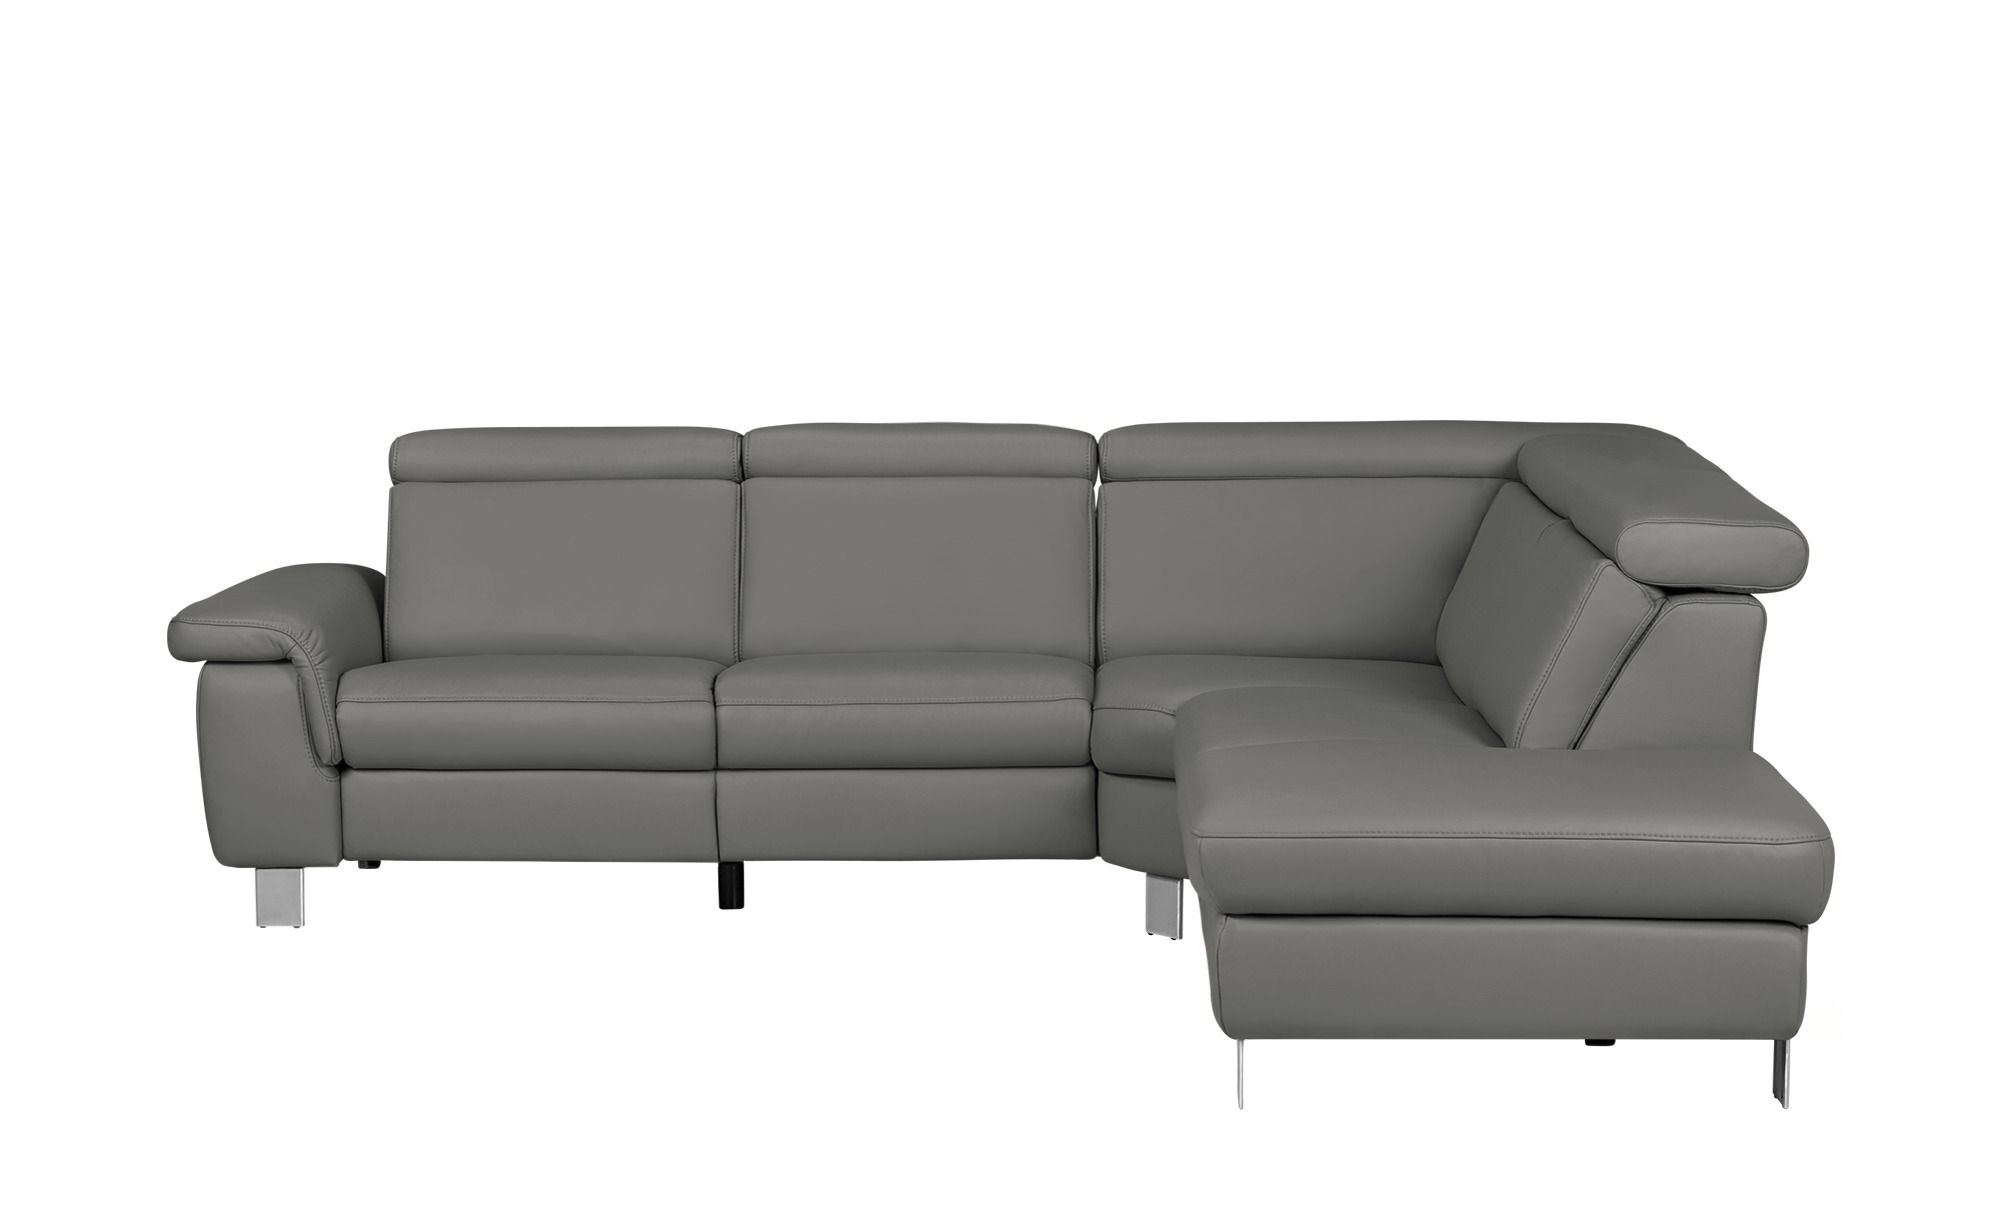 Gunstig Ecksofa Sofa Design L Shape Big Sofa Kaufen